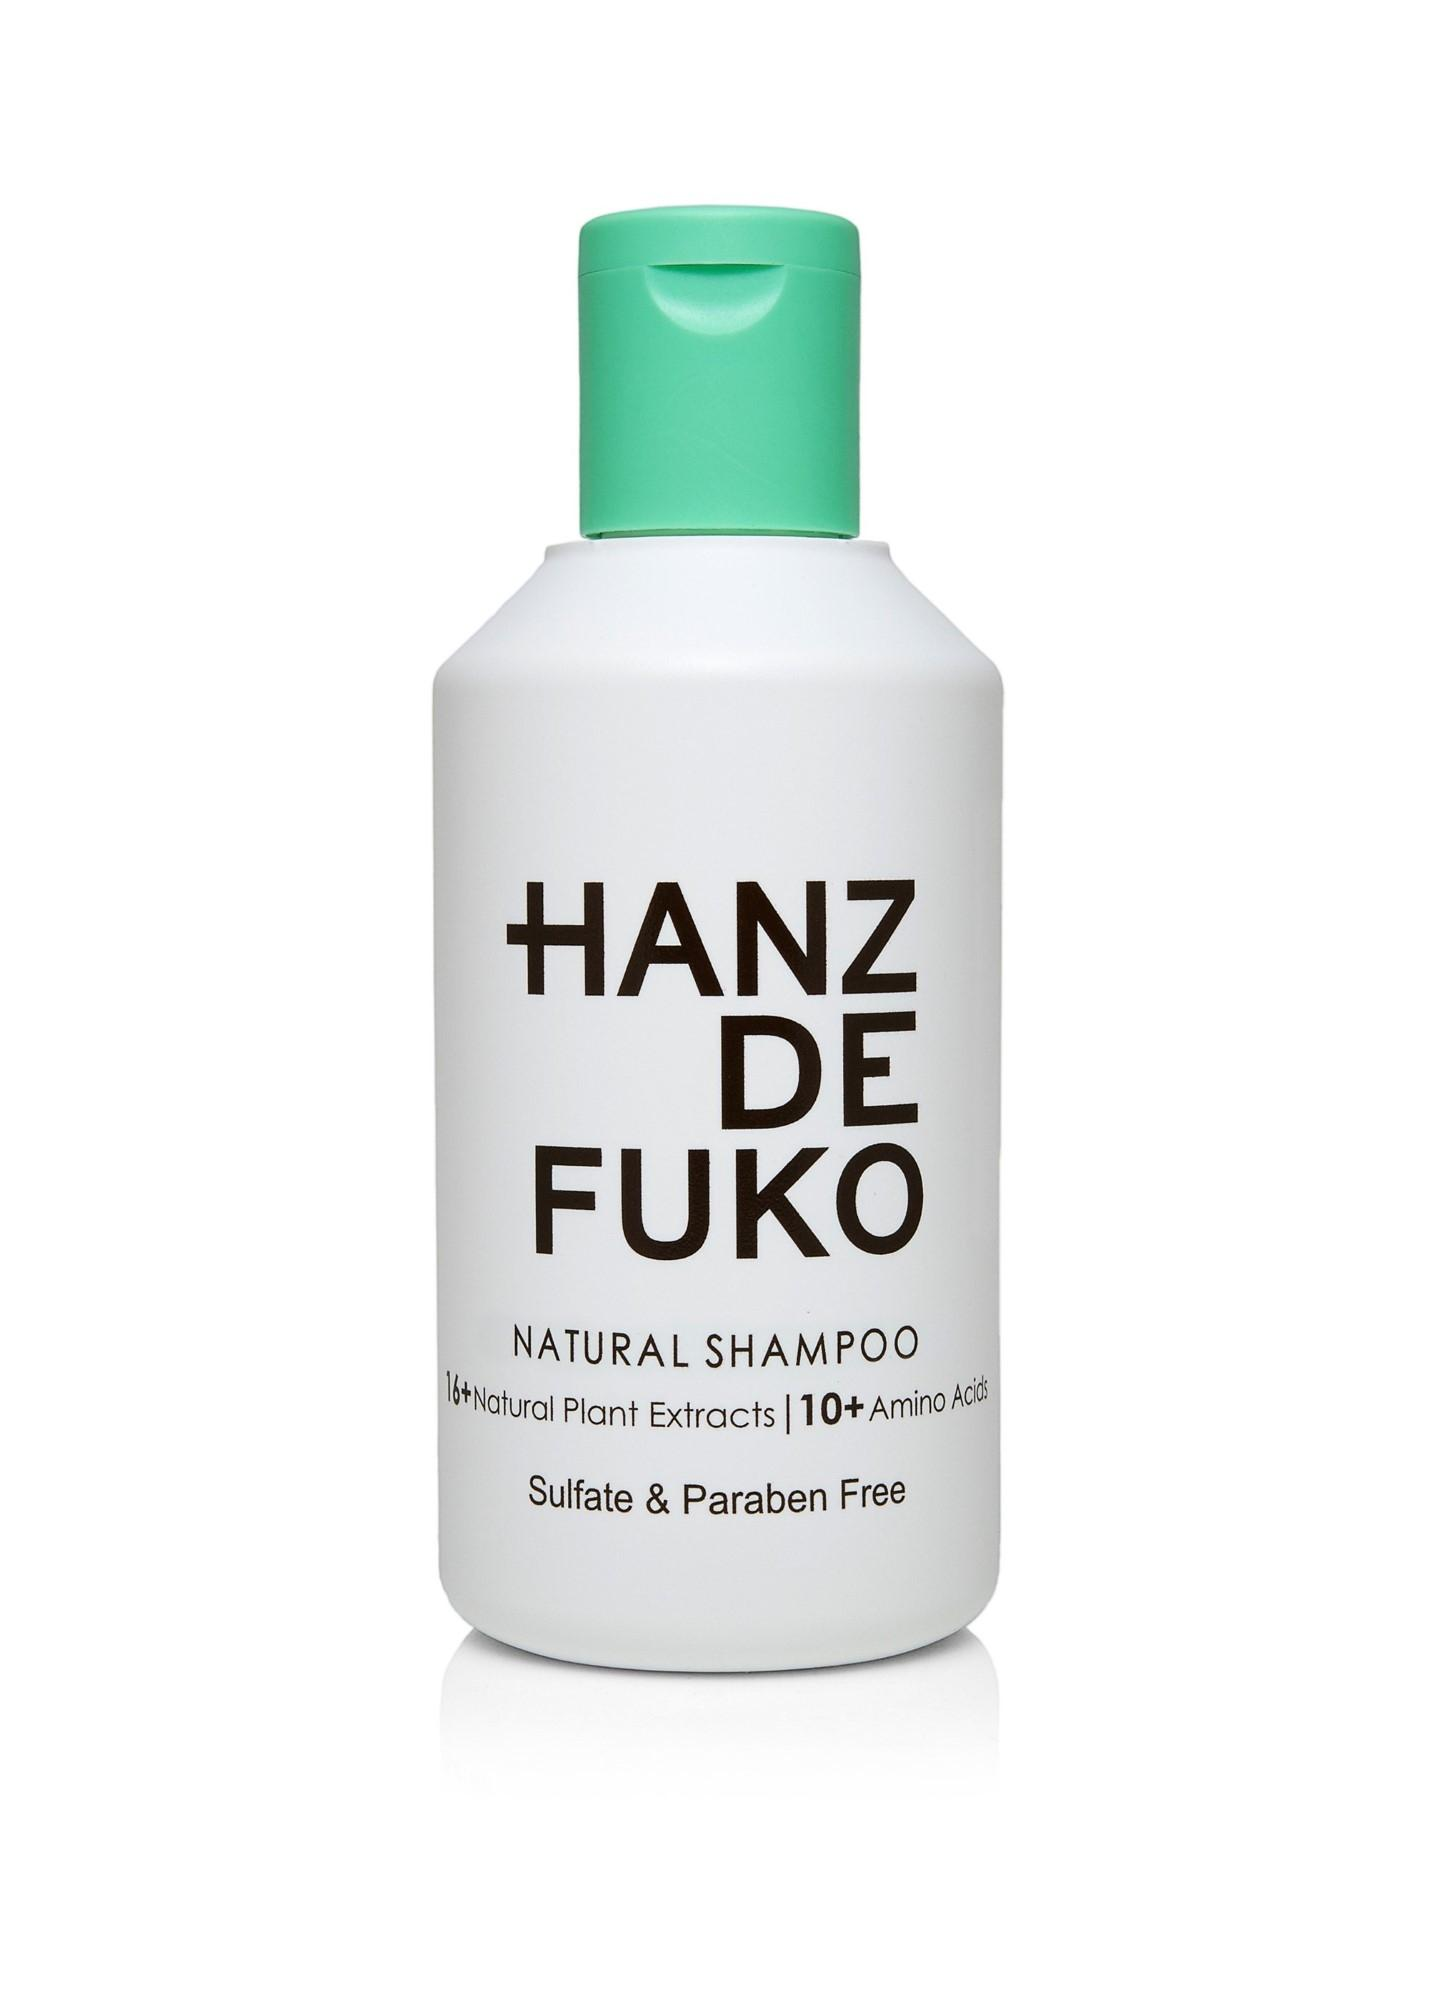 Hair Care Buy At Best Price In Nepal Tresemme Keratin Smooth Shampoo 70ml Hanz De Fuko Natural 237 Ml Sulfate Paraben Free